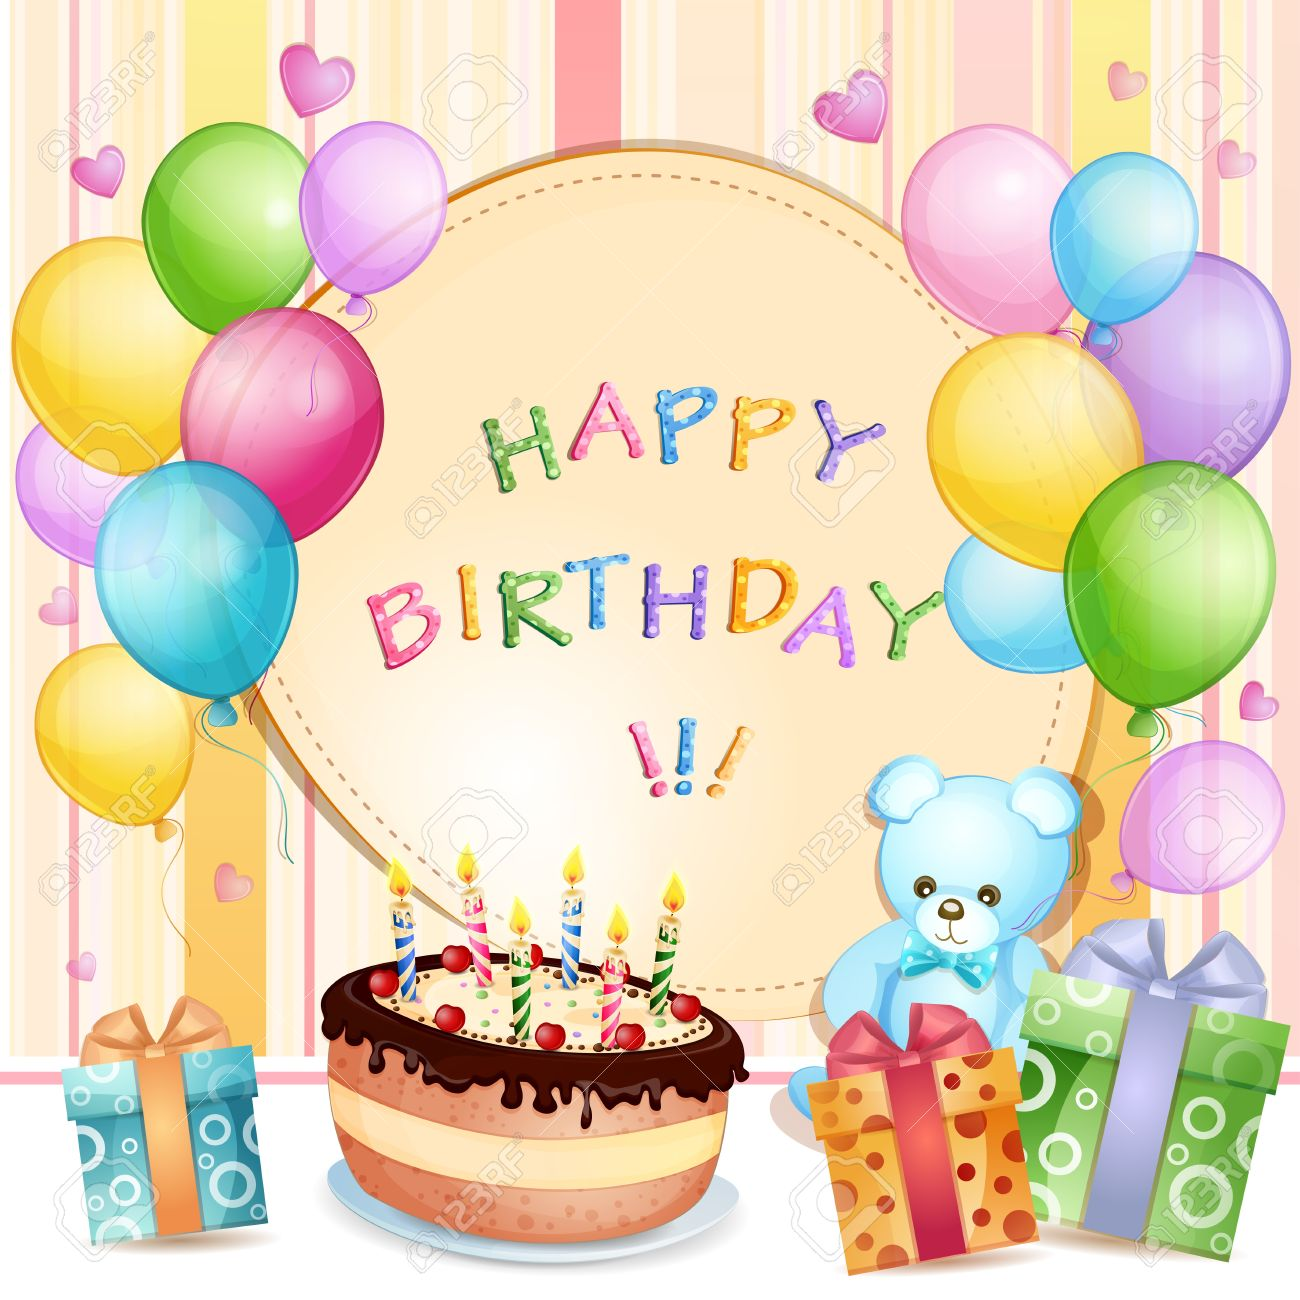 Birthday Card With Cake Balloons And Gifts Stock Vector